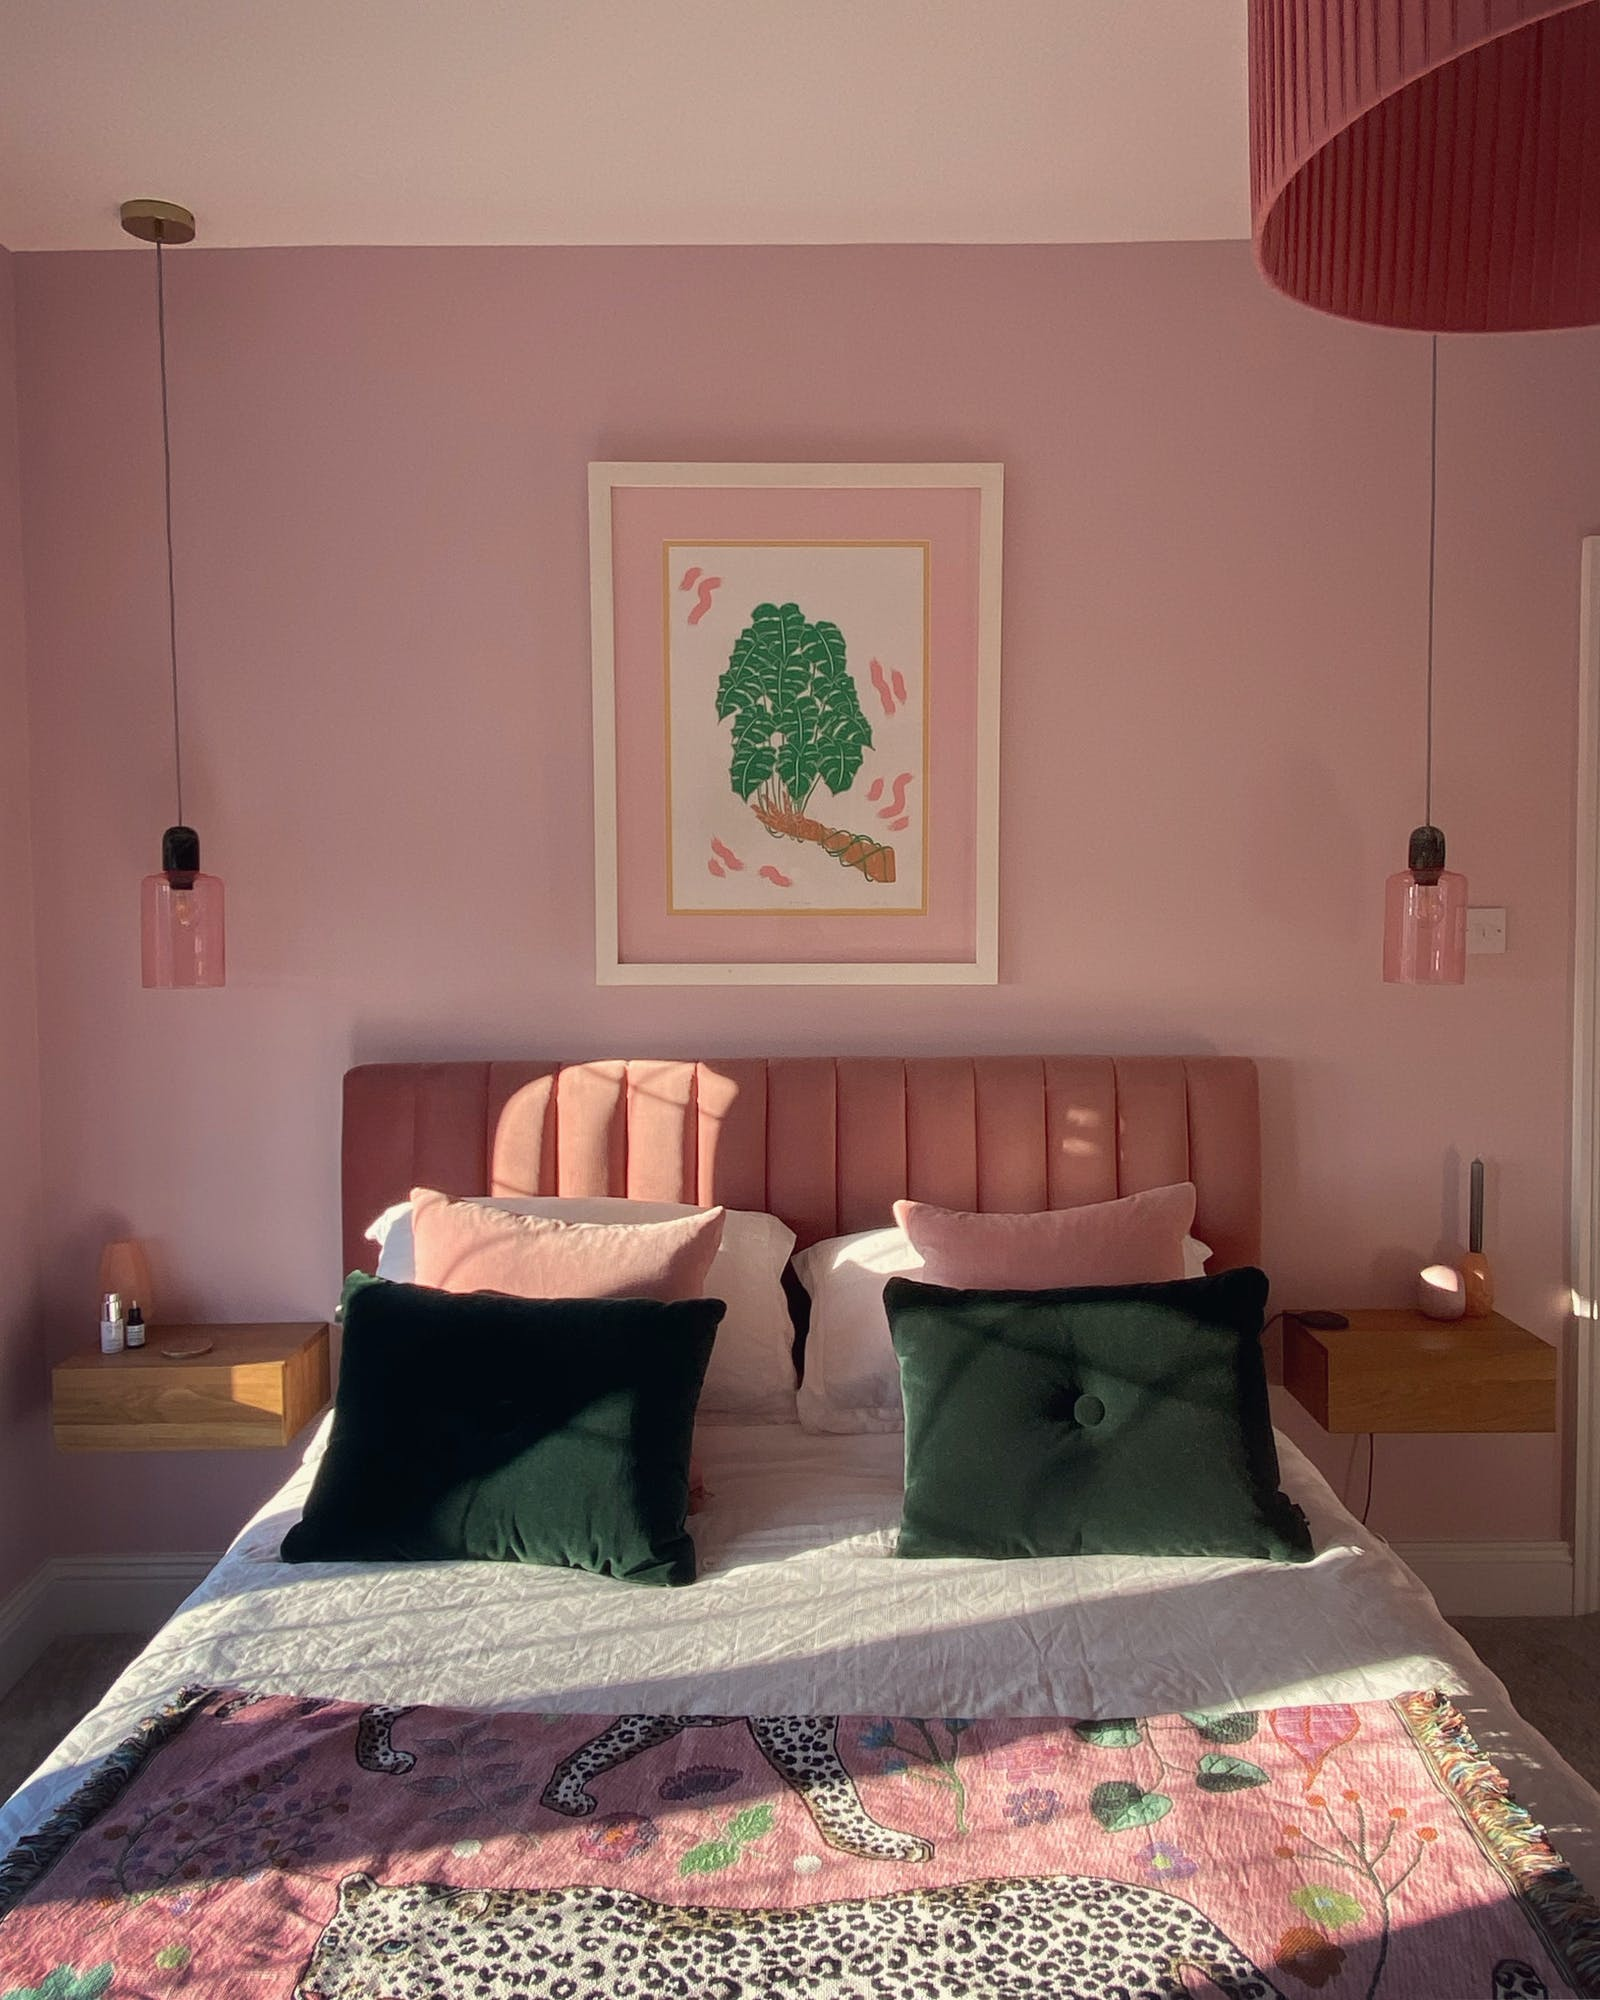 Bedroom painted in Pink 03 with green and pink soft furnishings and hanging lights